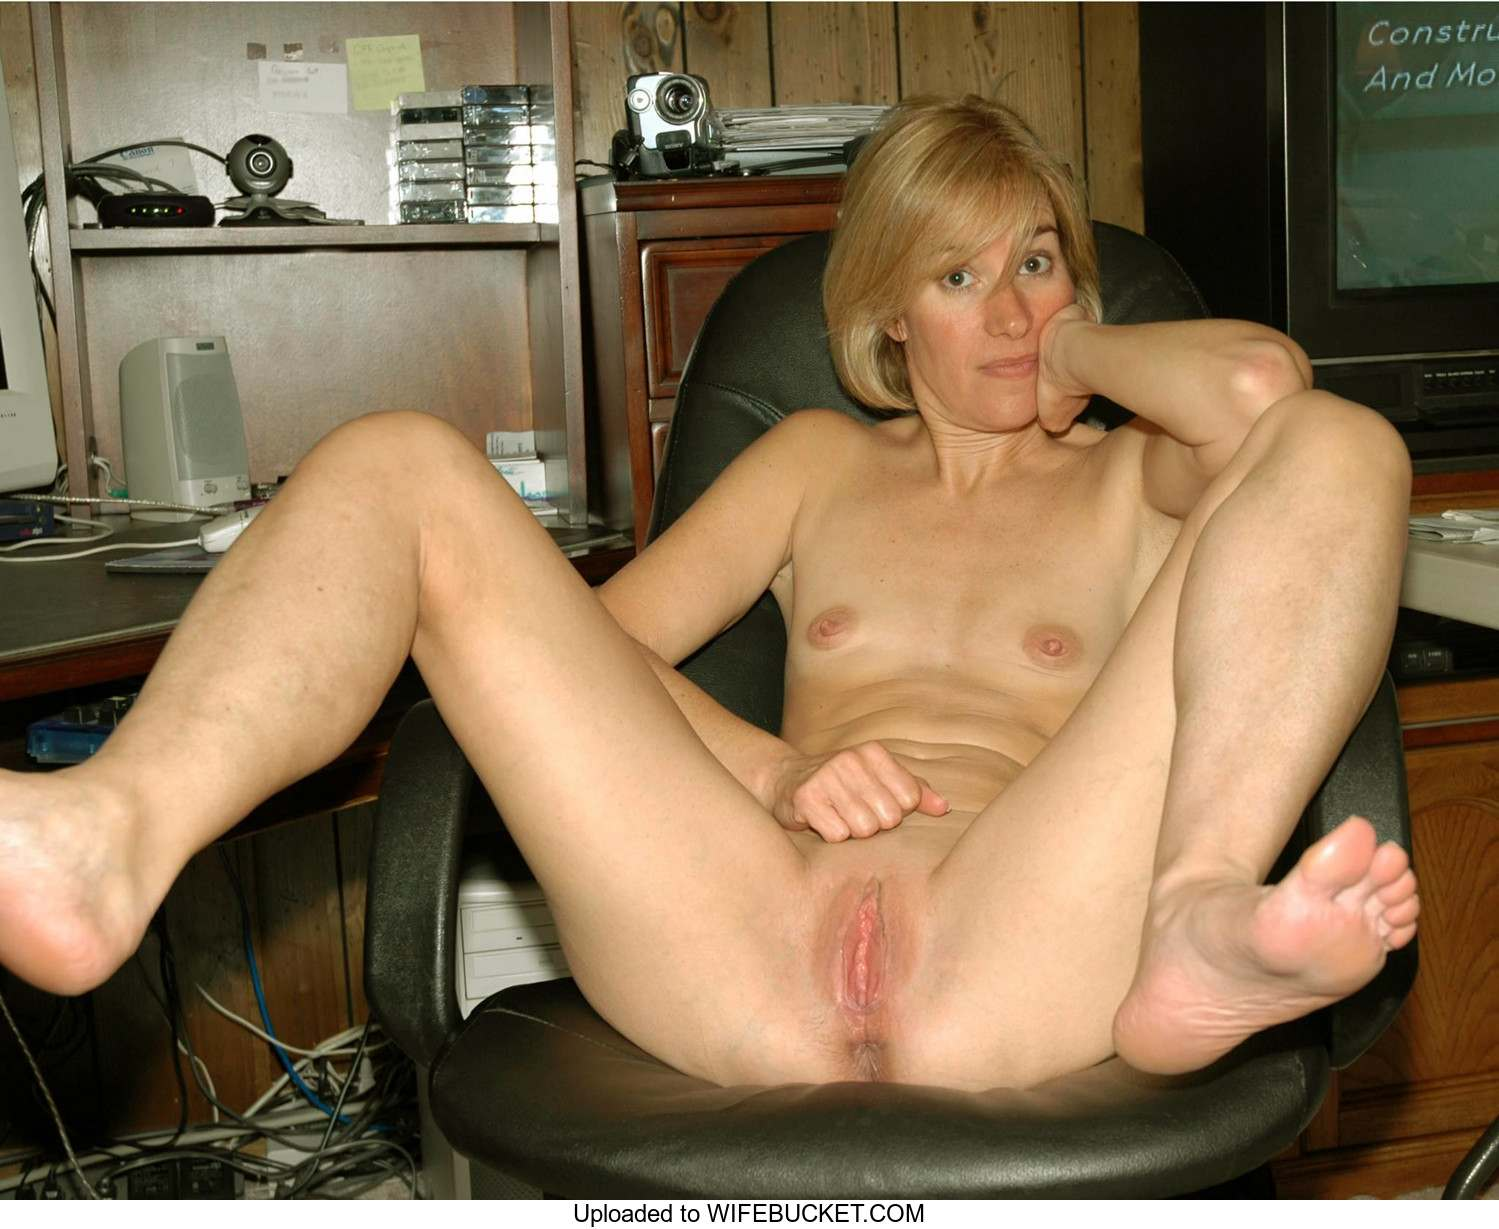 39 user-uploaded photos of real wives naked – WifeBucket ...